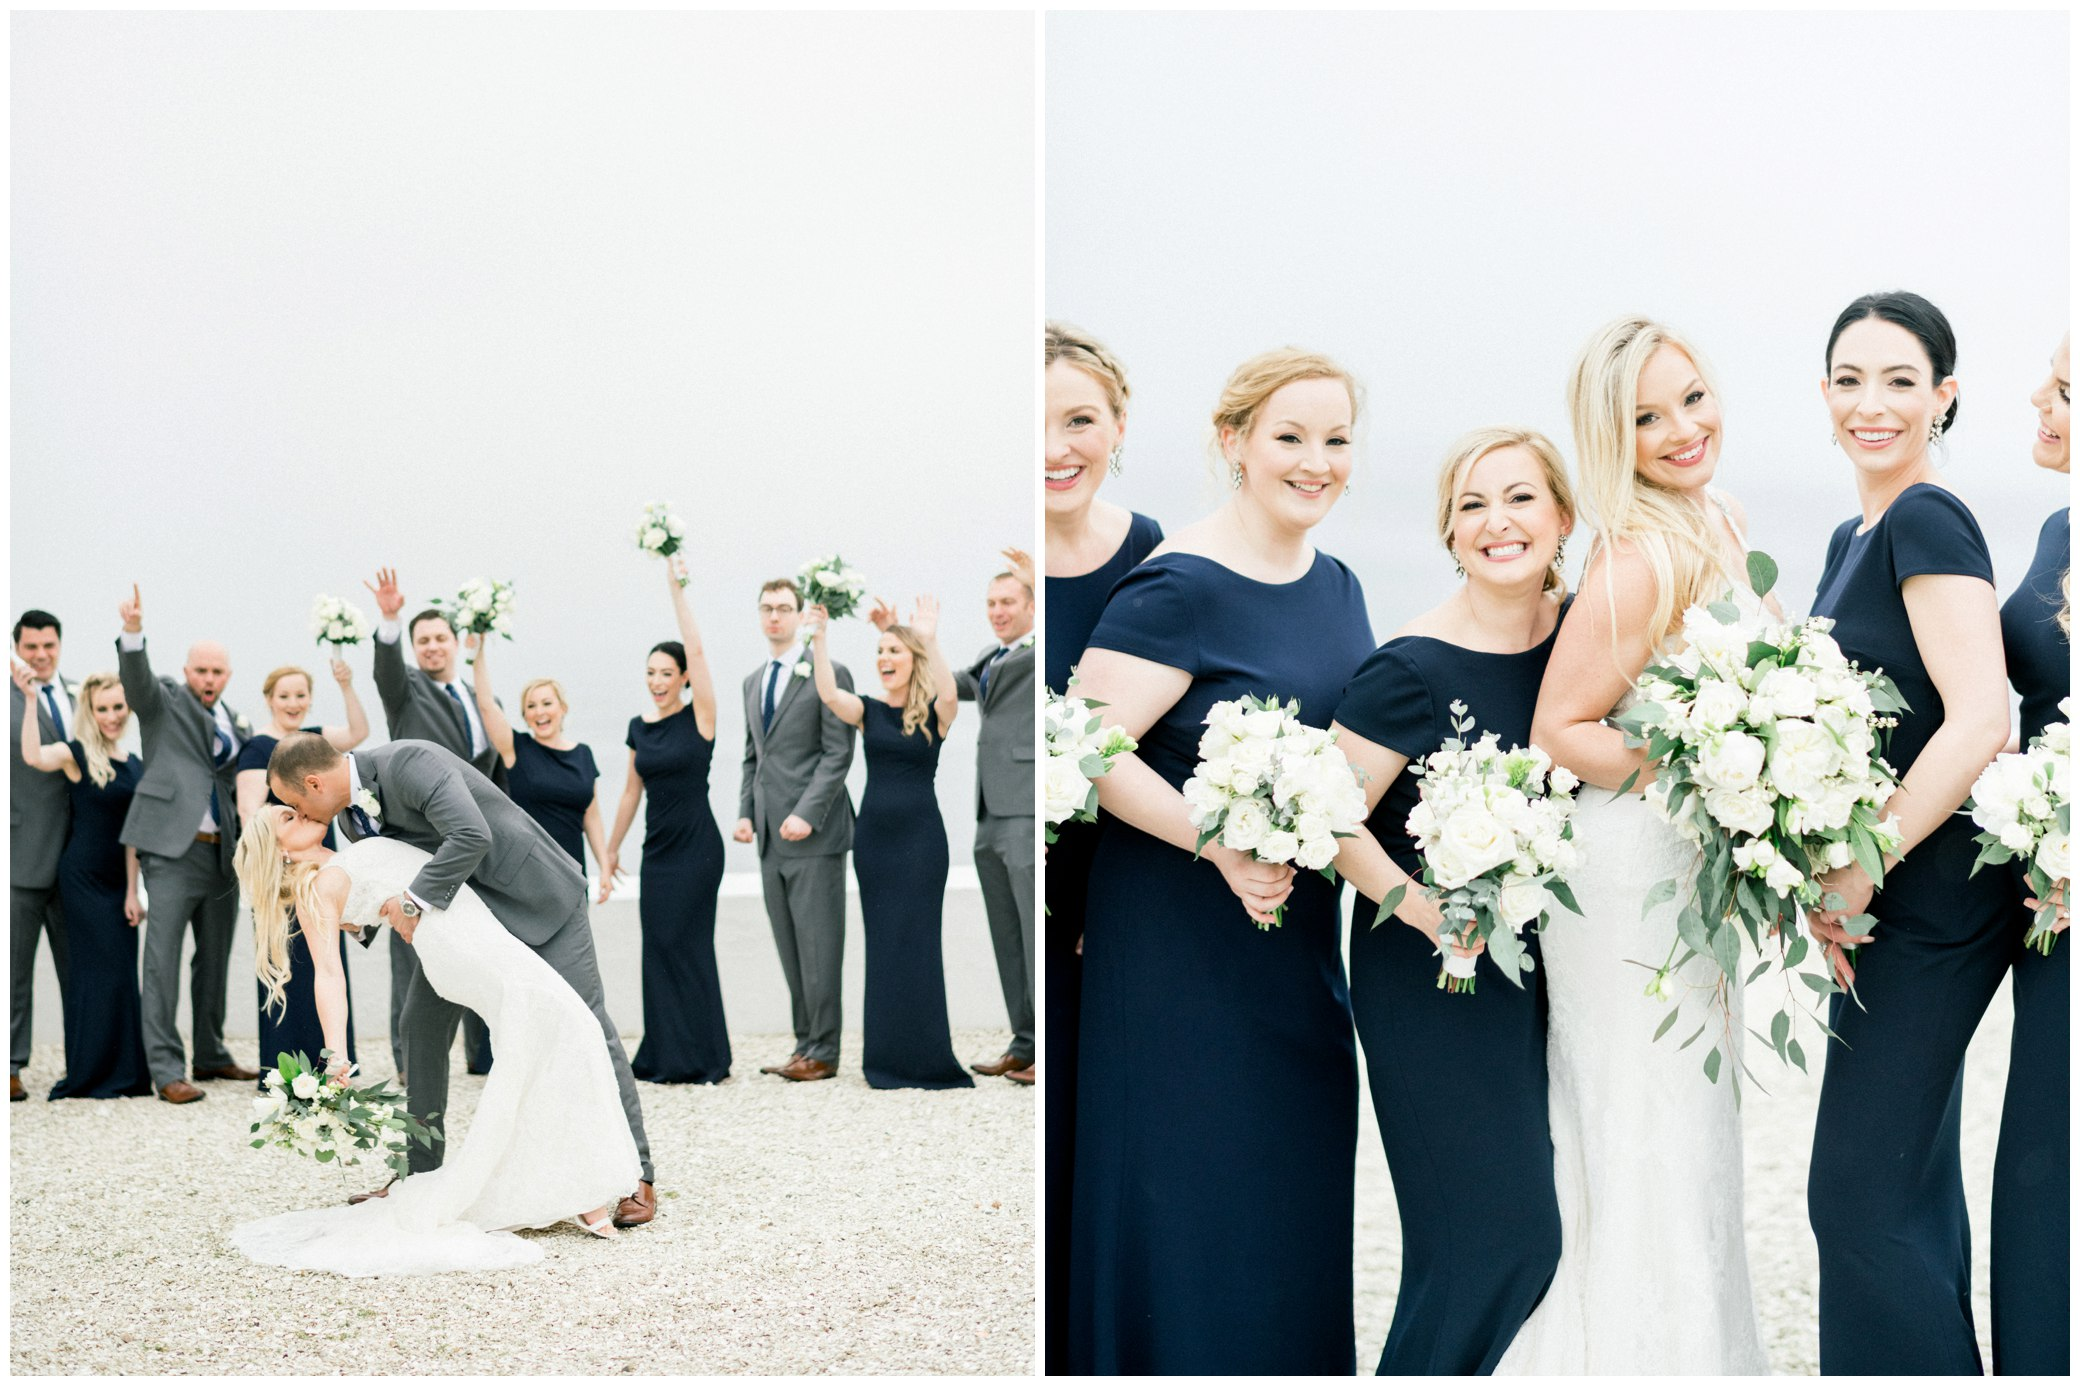 belle mer wedding photographer rhode island wedding